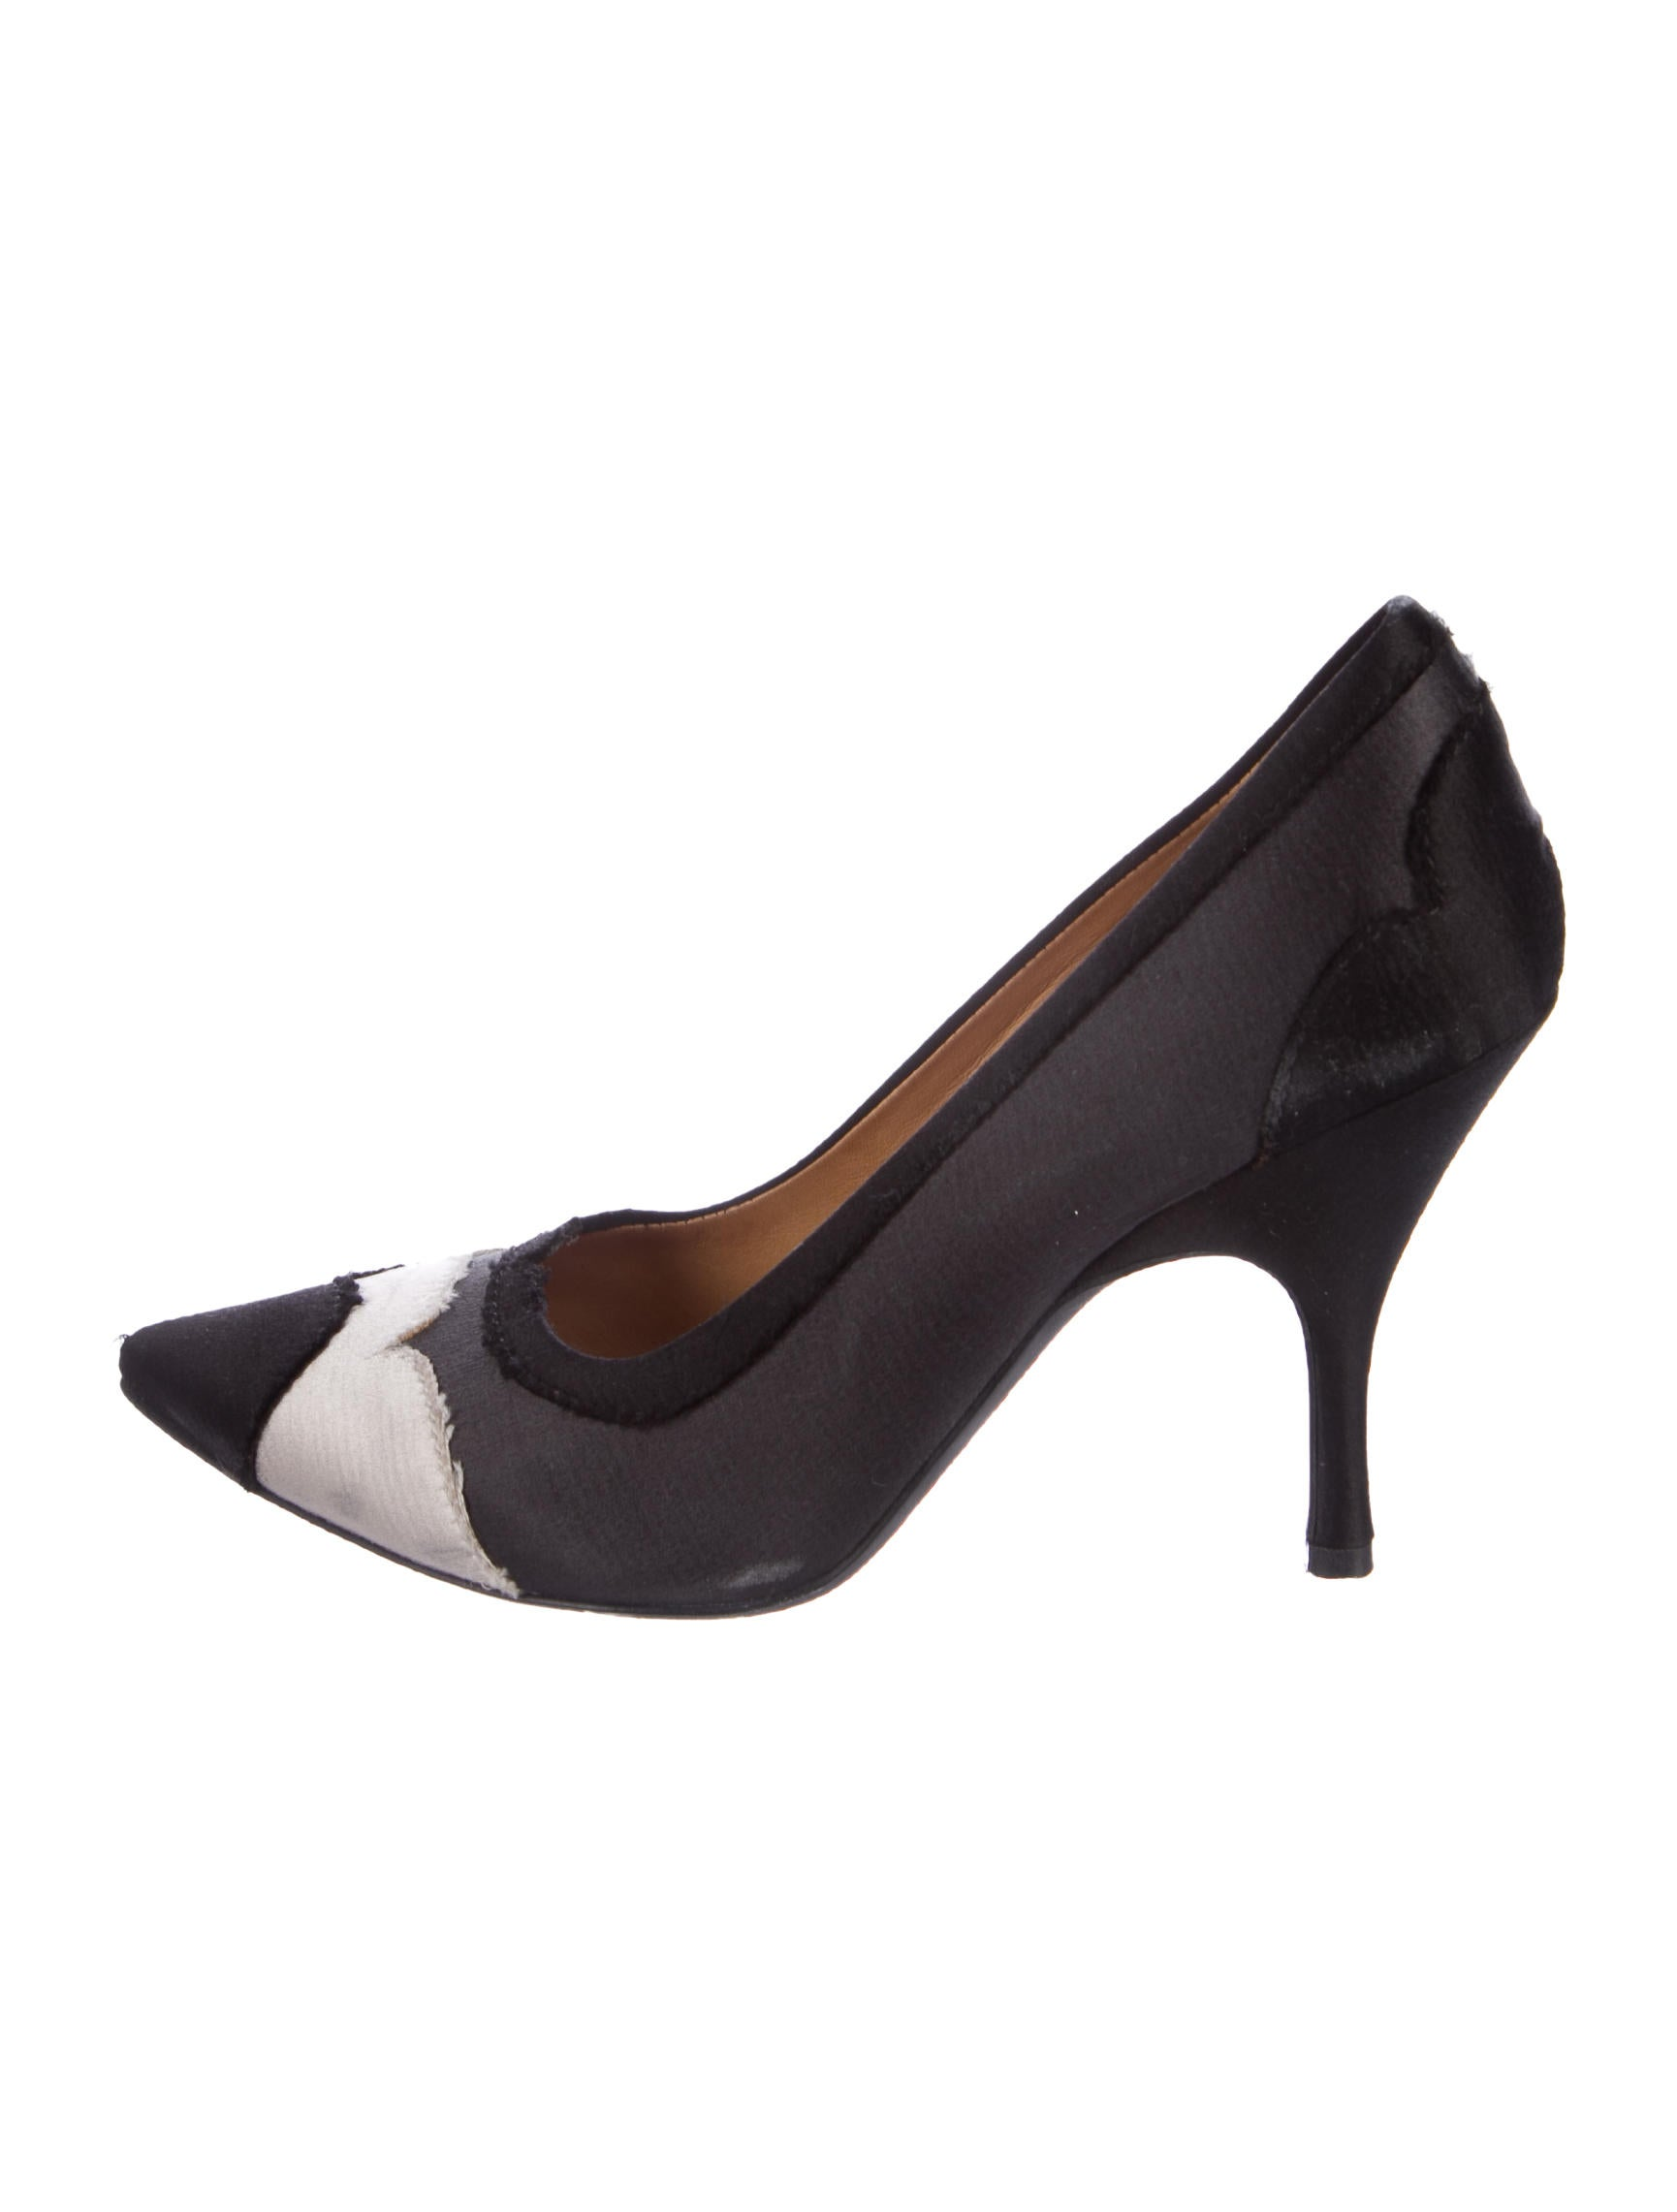 cheap pick a best Lanvin Satin Pointed-toe Pumps best seller latest collections recommend online cheap sale fashion Style n34mQrUJ4M